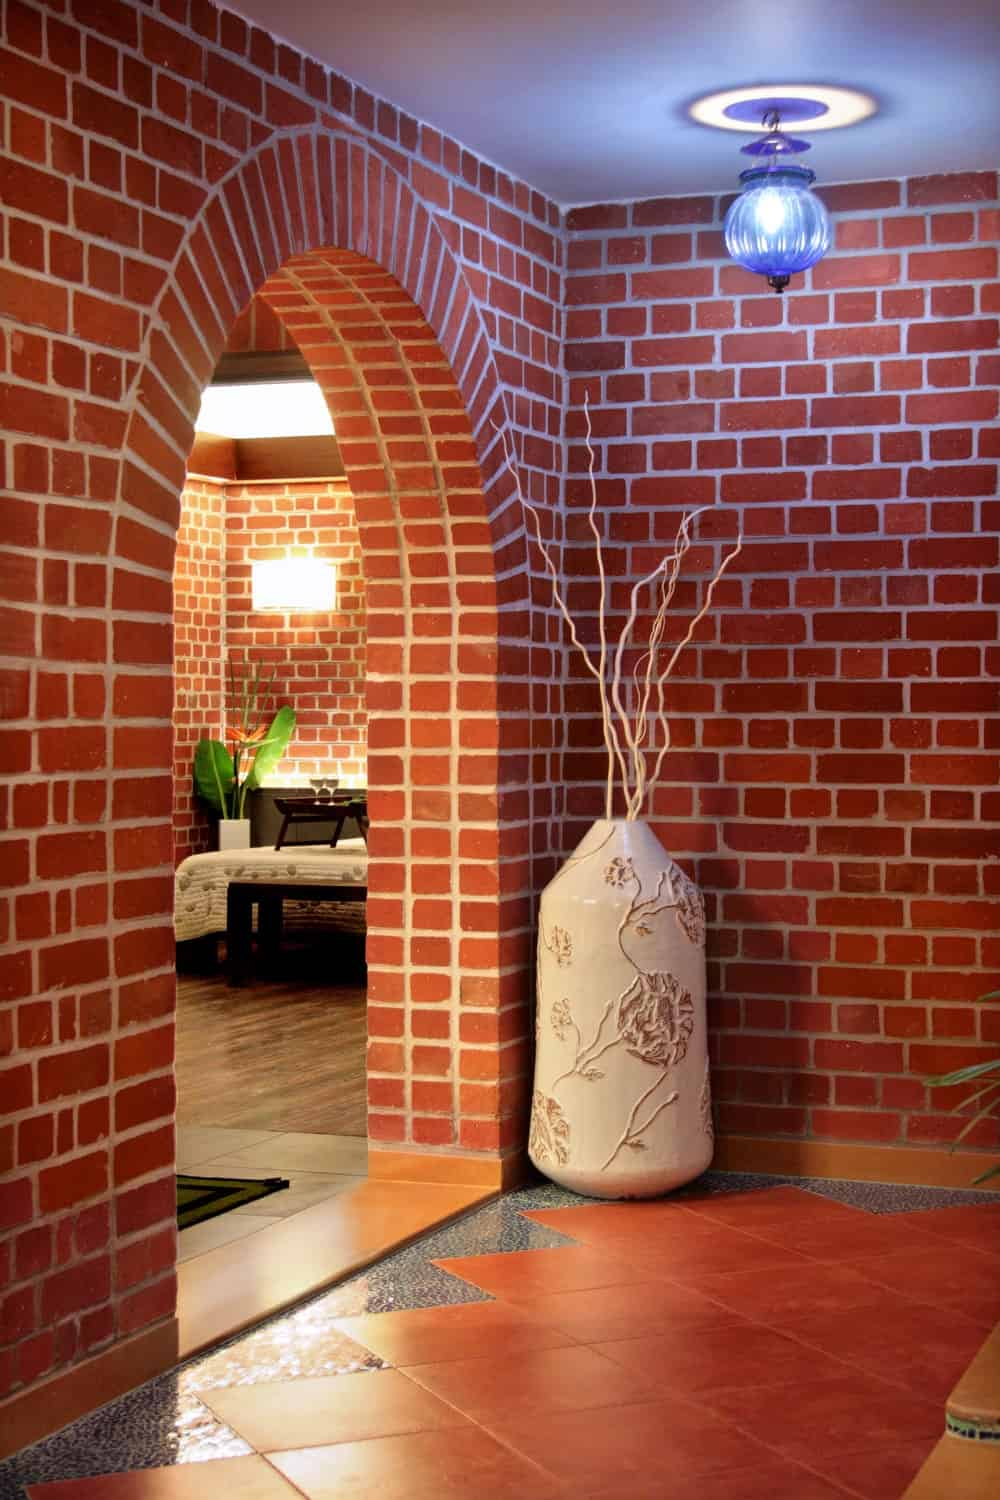 This is the brick arched entryway into the bedroom adorned with a large vase and a modern lighting.